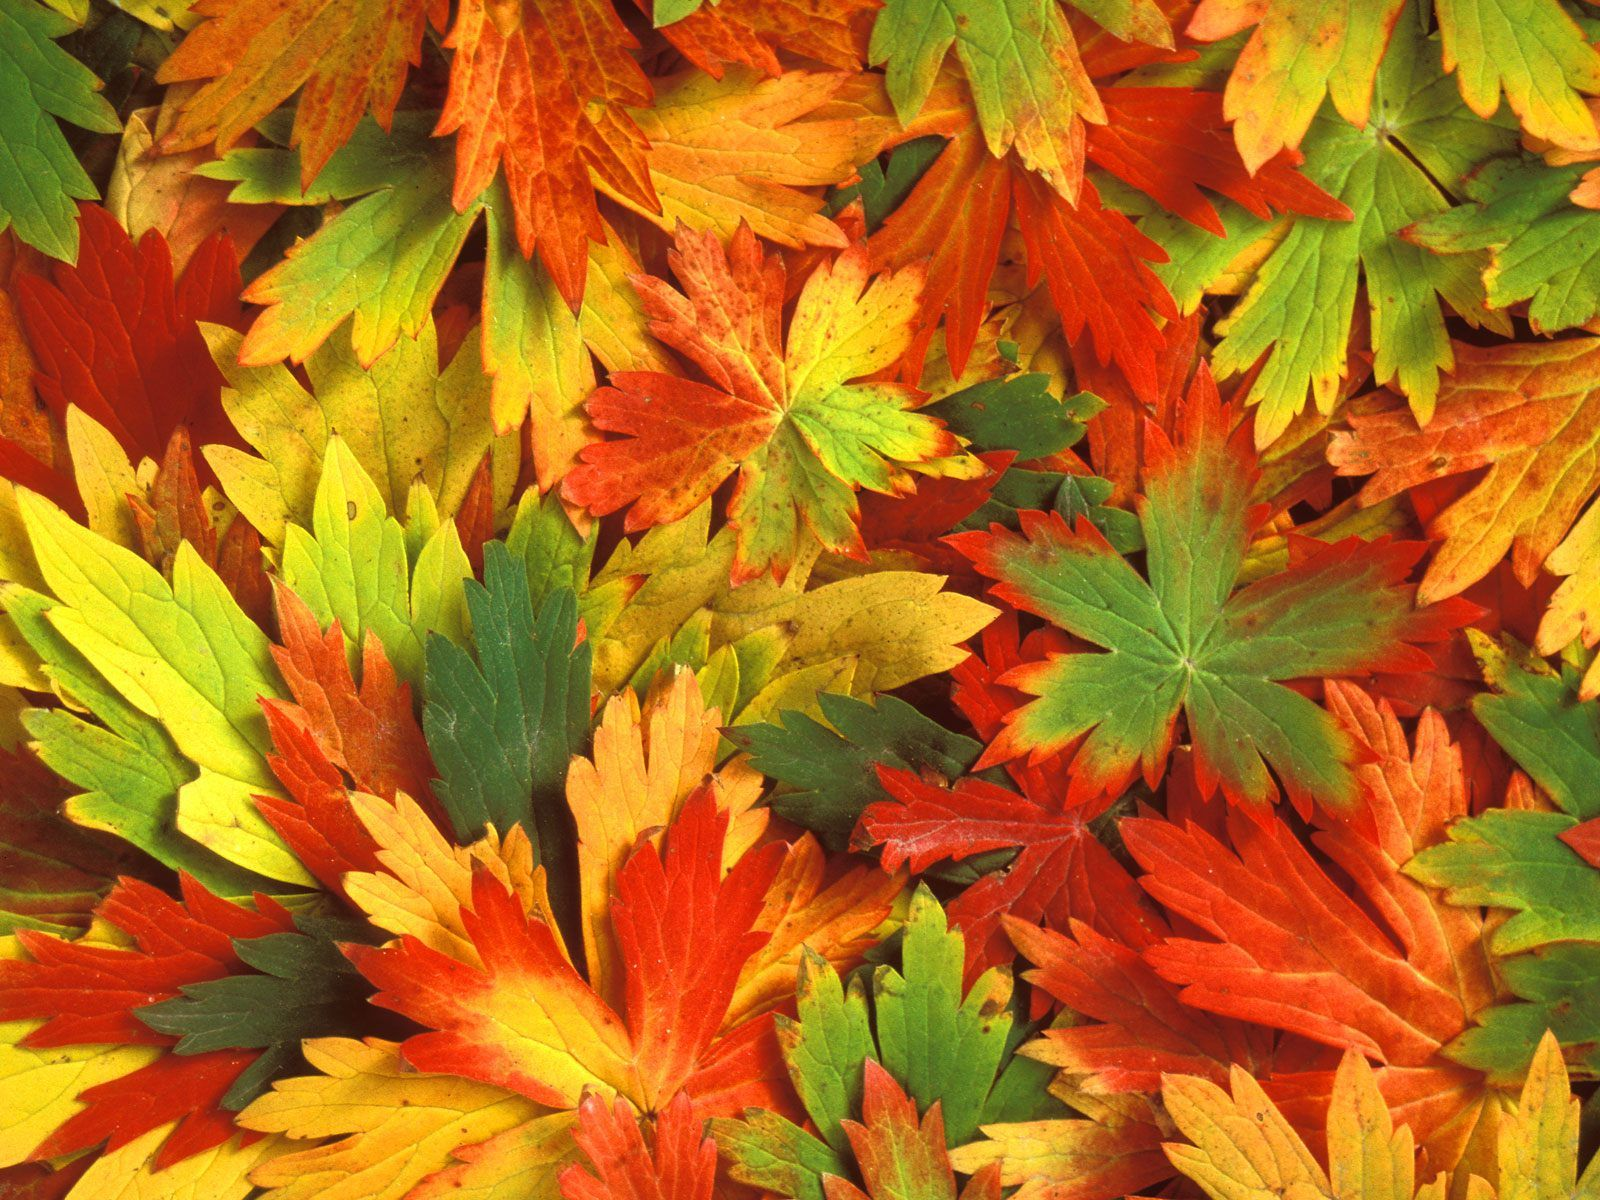 Fall Leaf Backgrounds wallpaper wallpaper hd background desktop 1600x1200